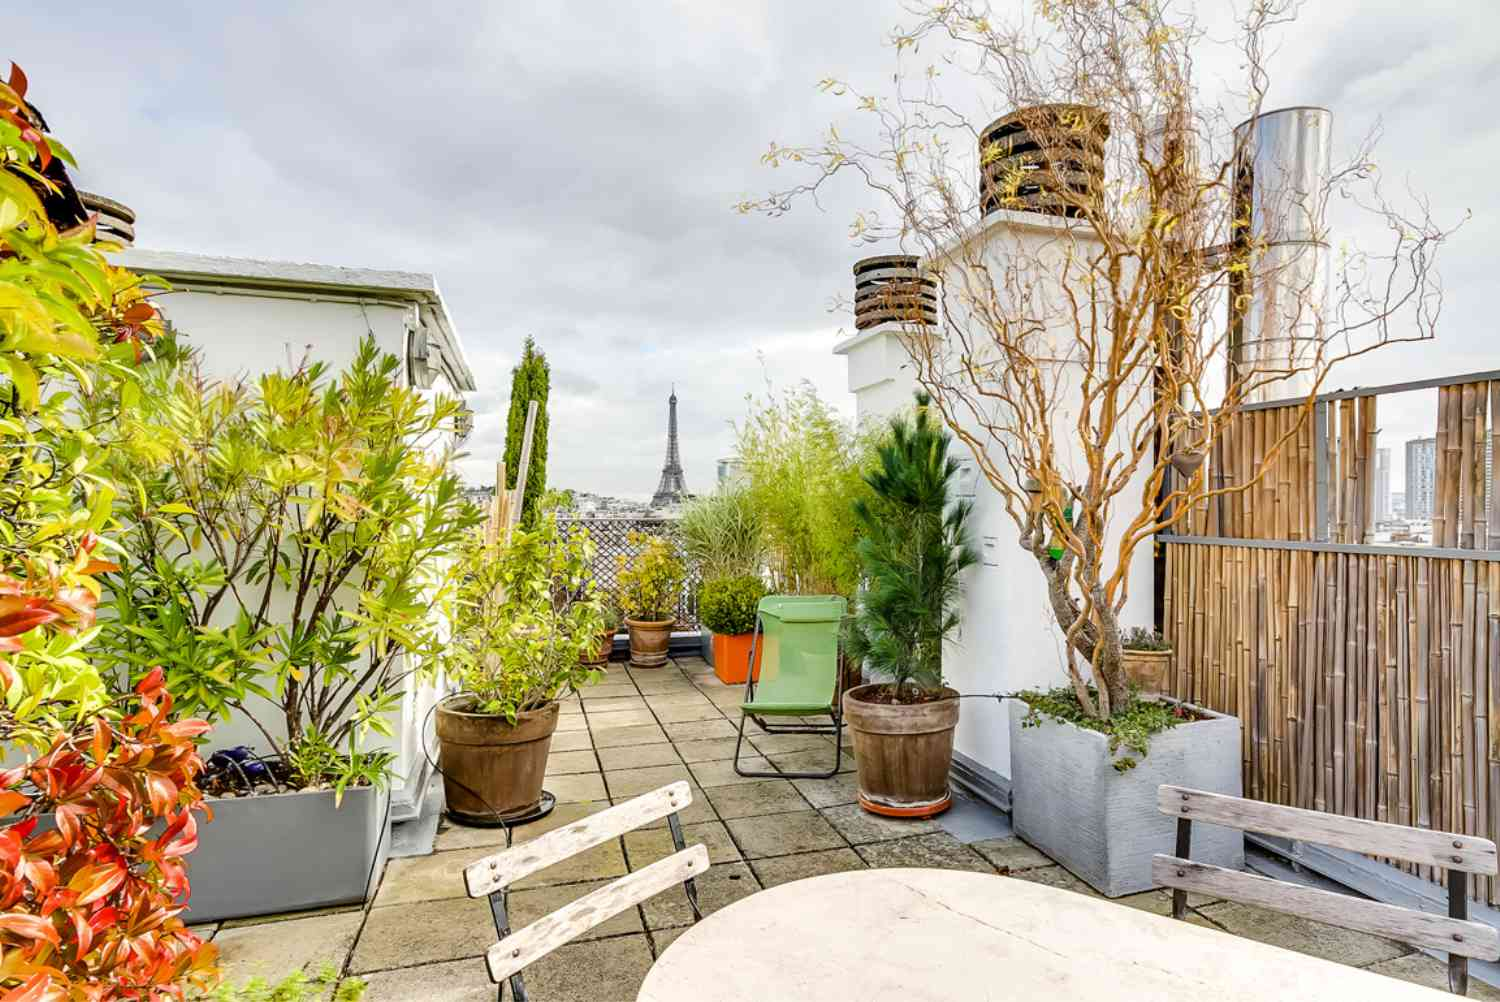 Rooftop garden during the fall with Eiffel Tower in the distance.